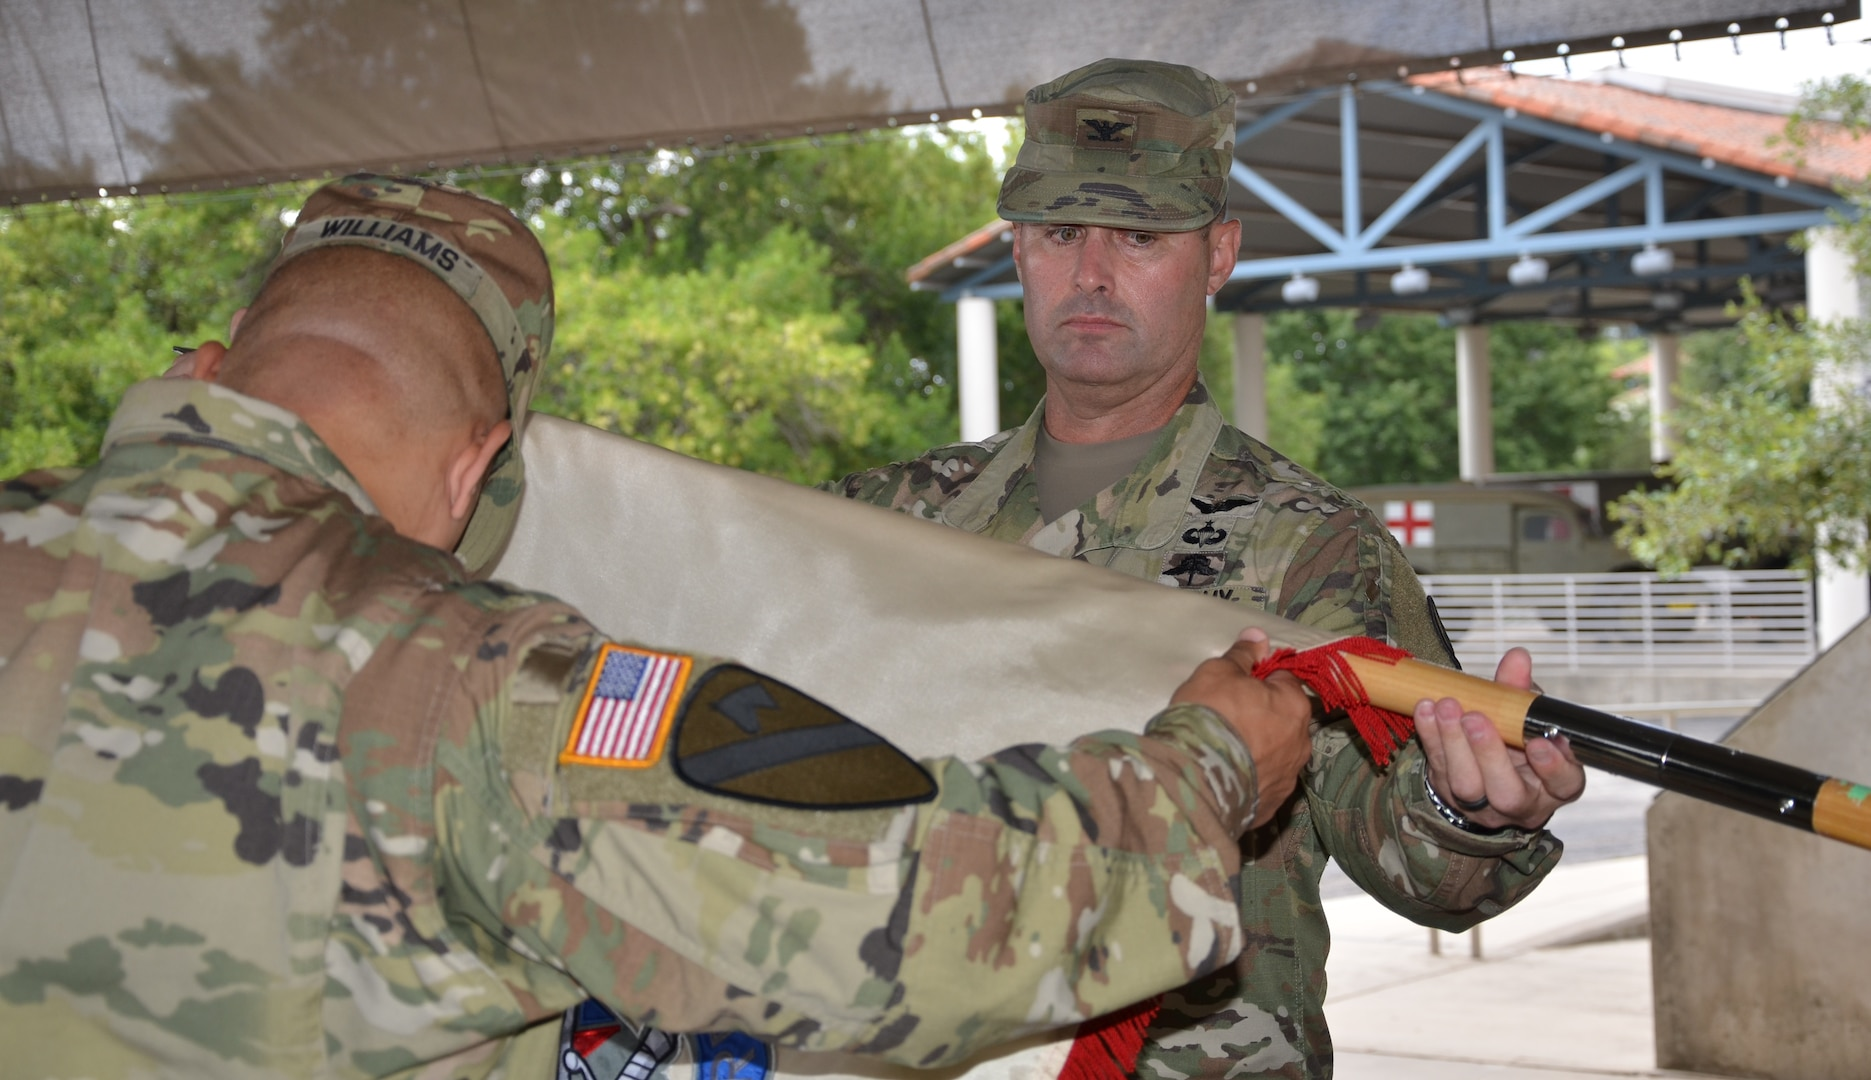 Col. Jeffrey Burris (right) and Command Sgt. Maj. Charles Williams (left) unfurl the colors during the 410th Contracting Support Brigade's uncasing ceremony Aug. 15 at the U.S. Army Medical Department Museum, Joint Base San Antonio-Fort Sam Houston, Texas. Burris is the 410th CSB commander, and Williams is the 410th CSB sergeant major.